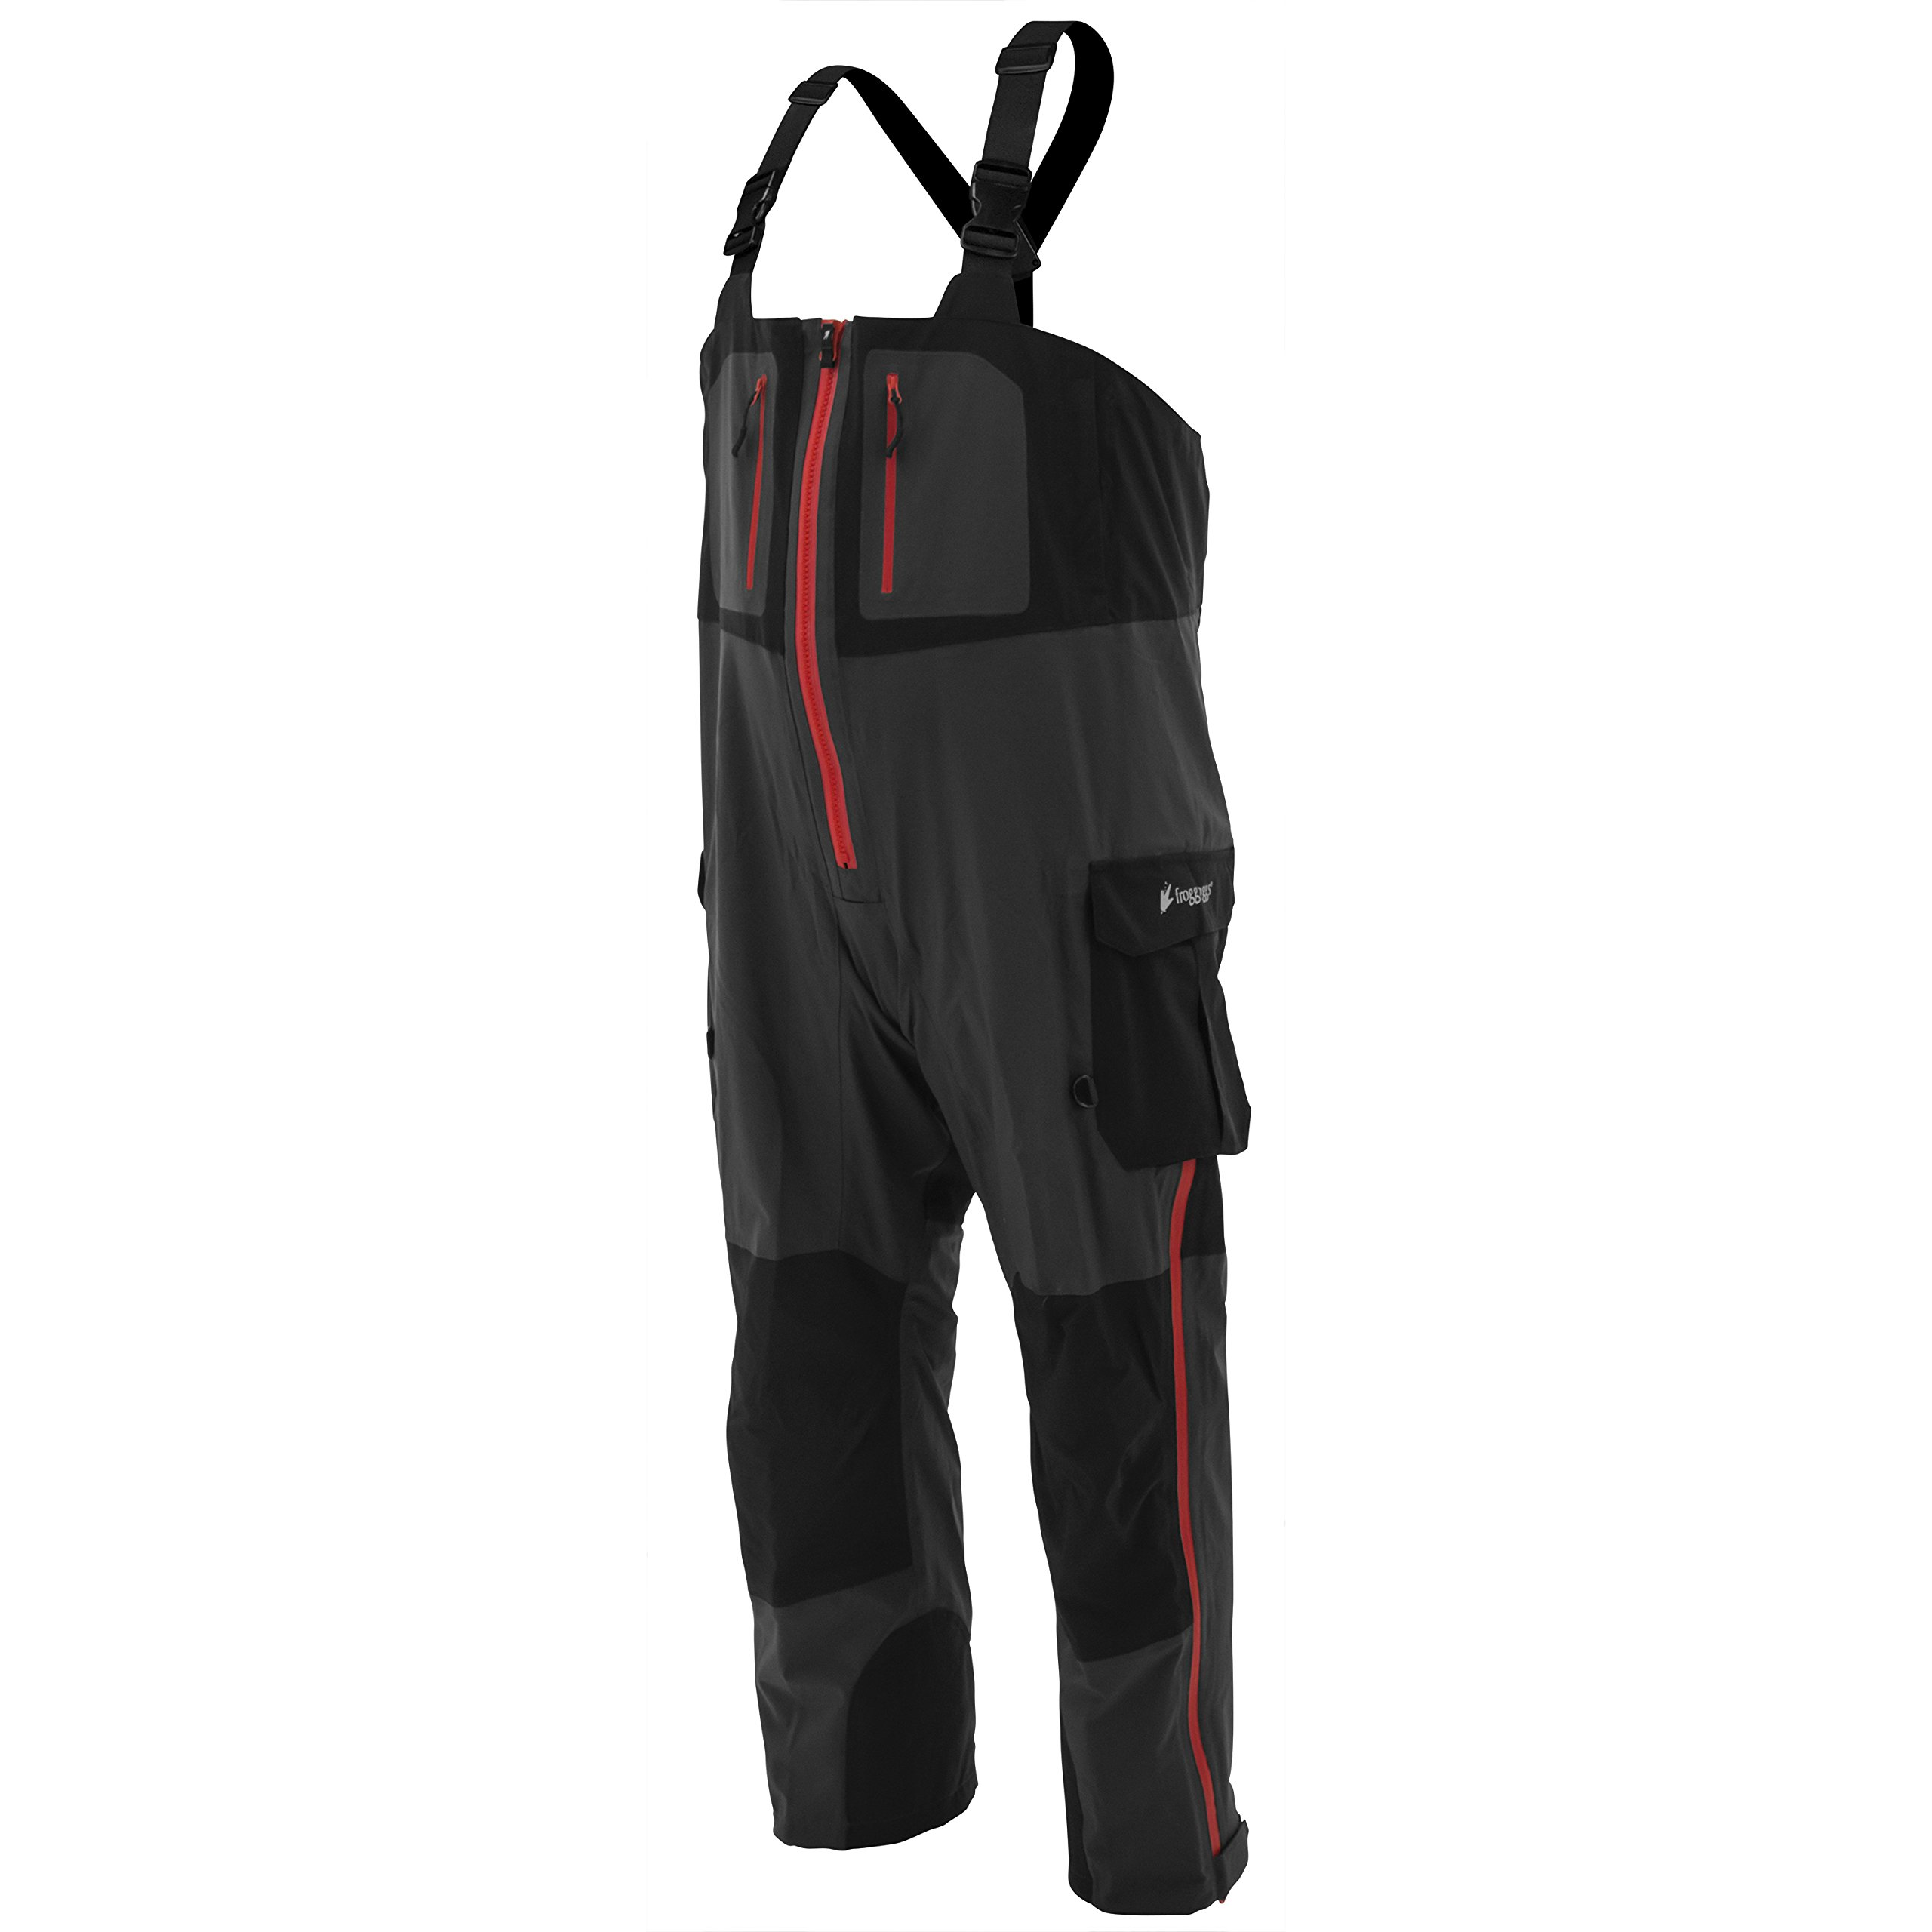 Frogg Toggs Pilot II Guide Bib, Black/Charcoal, Size X-Large